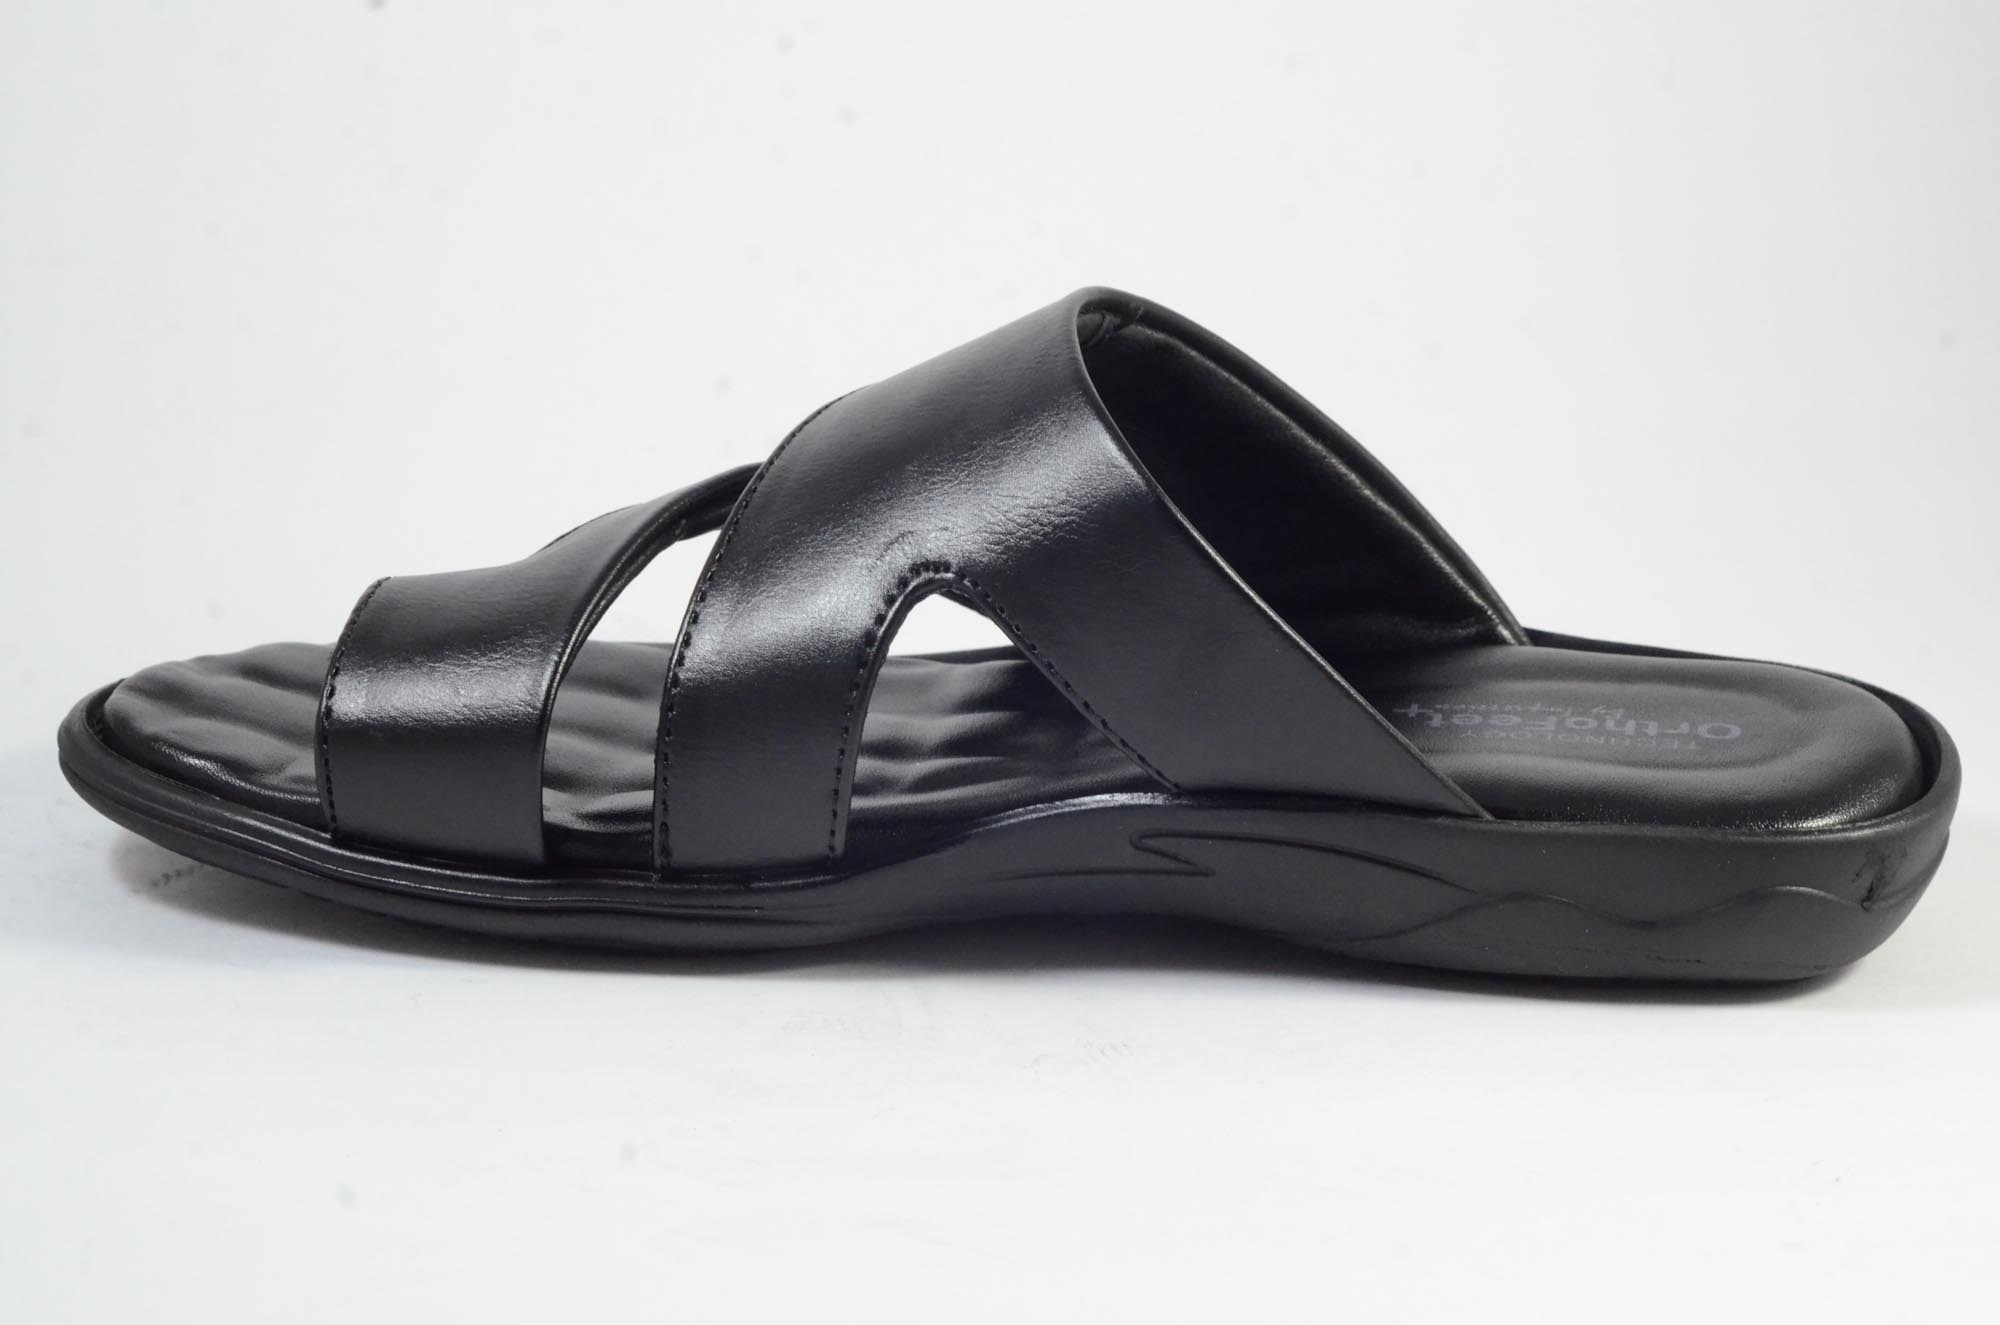 DOCTOR ORTHO SLIPPERS COMFORTABLE AND BEST QUALITY KS_255 (BLACK,7-10,4)